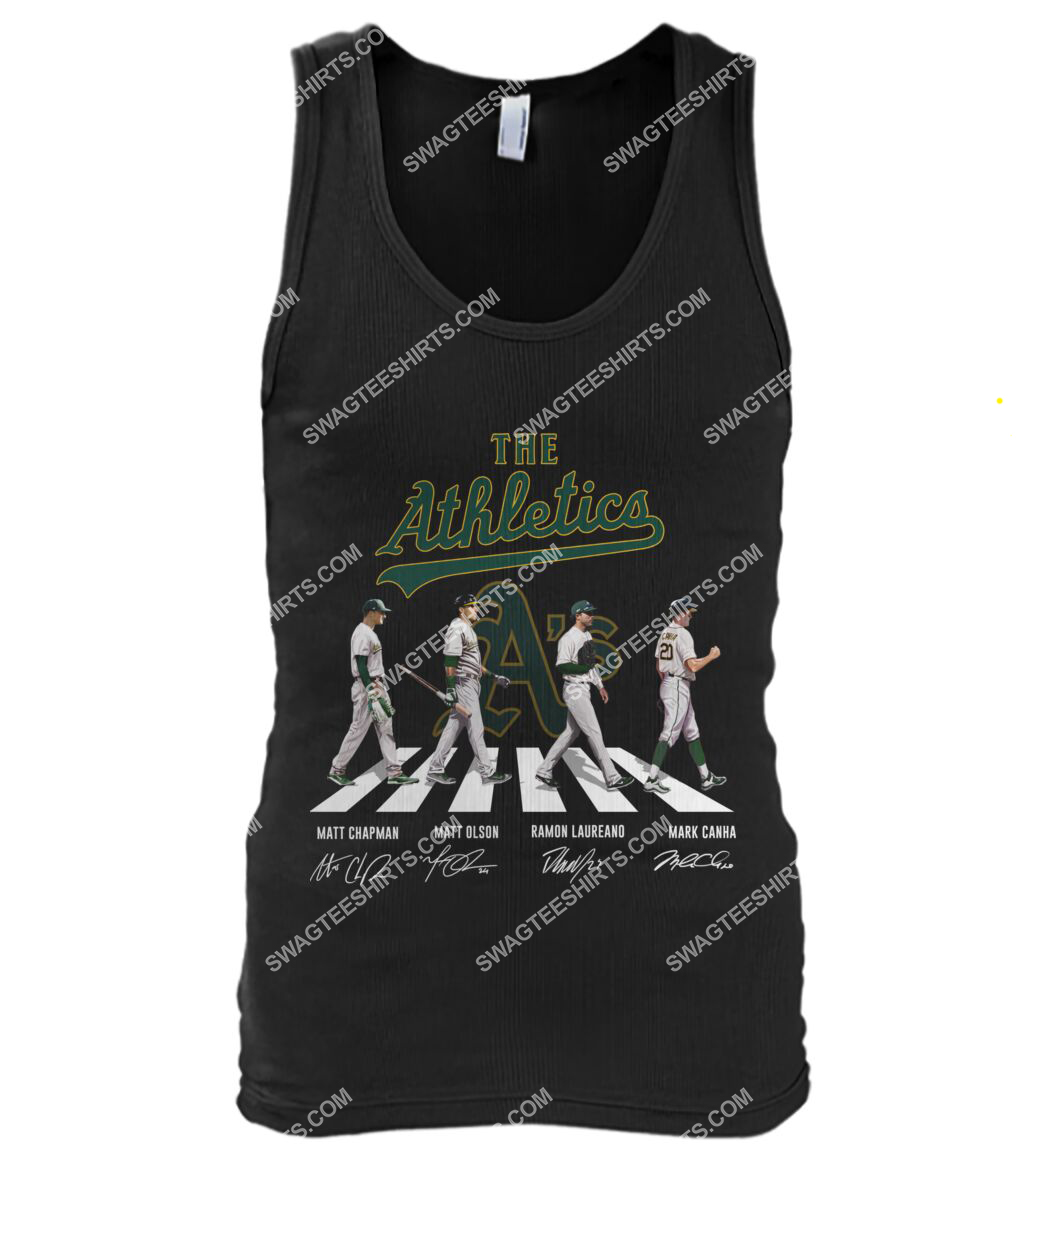 the oakland athletics signatures abbey road tank top 1